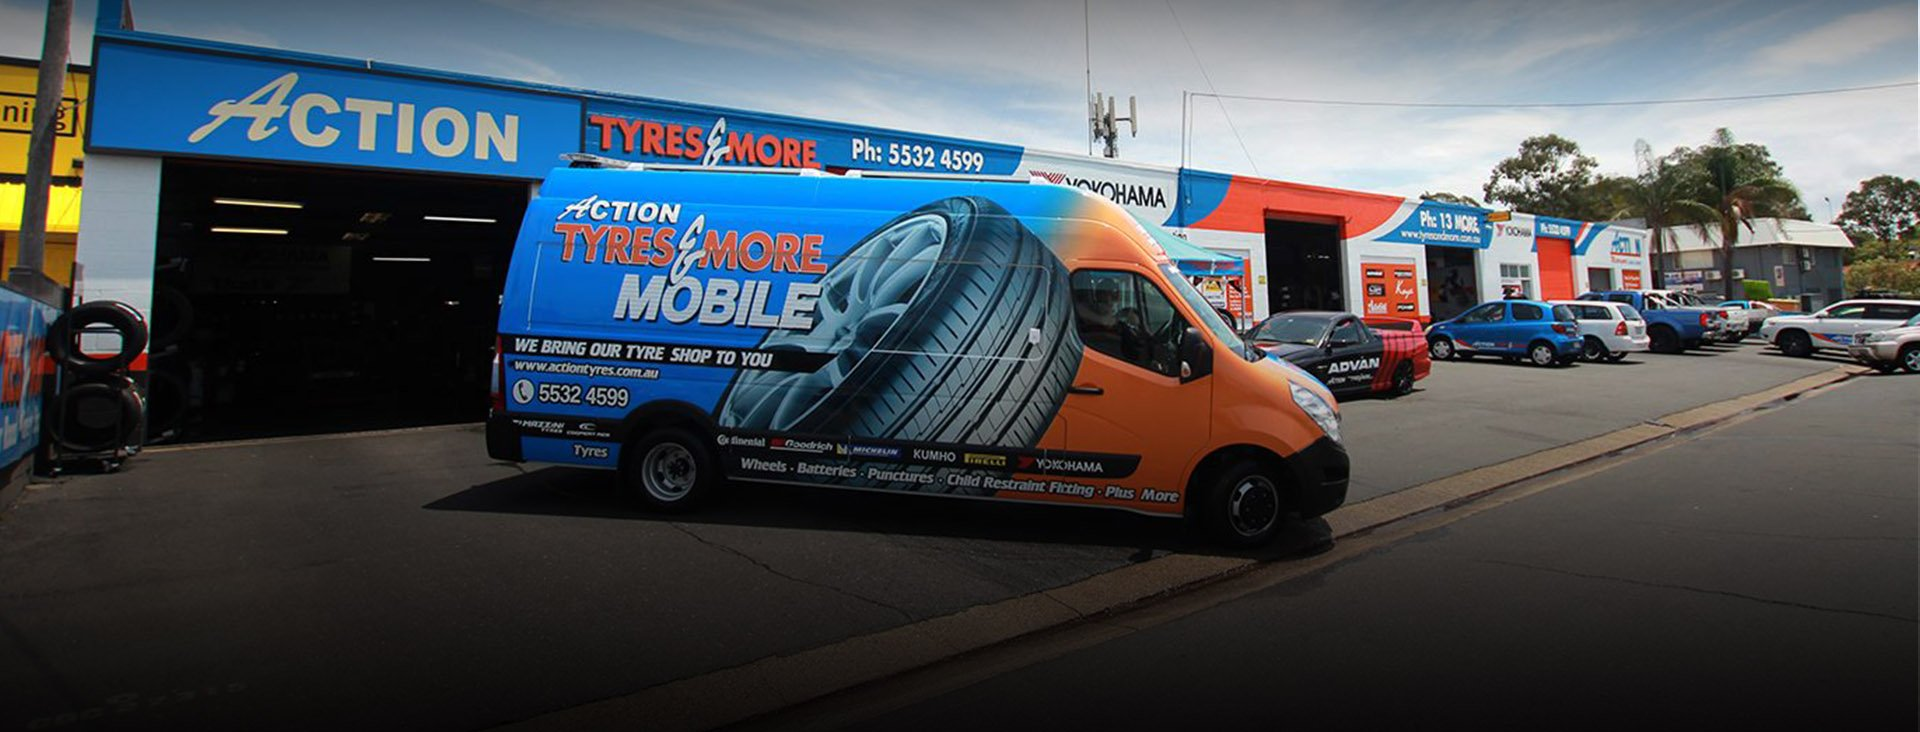 action-tyres-main-banner-mobile-tyres-store